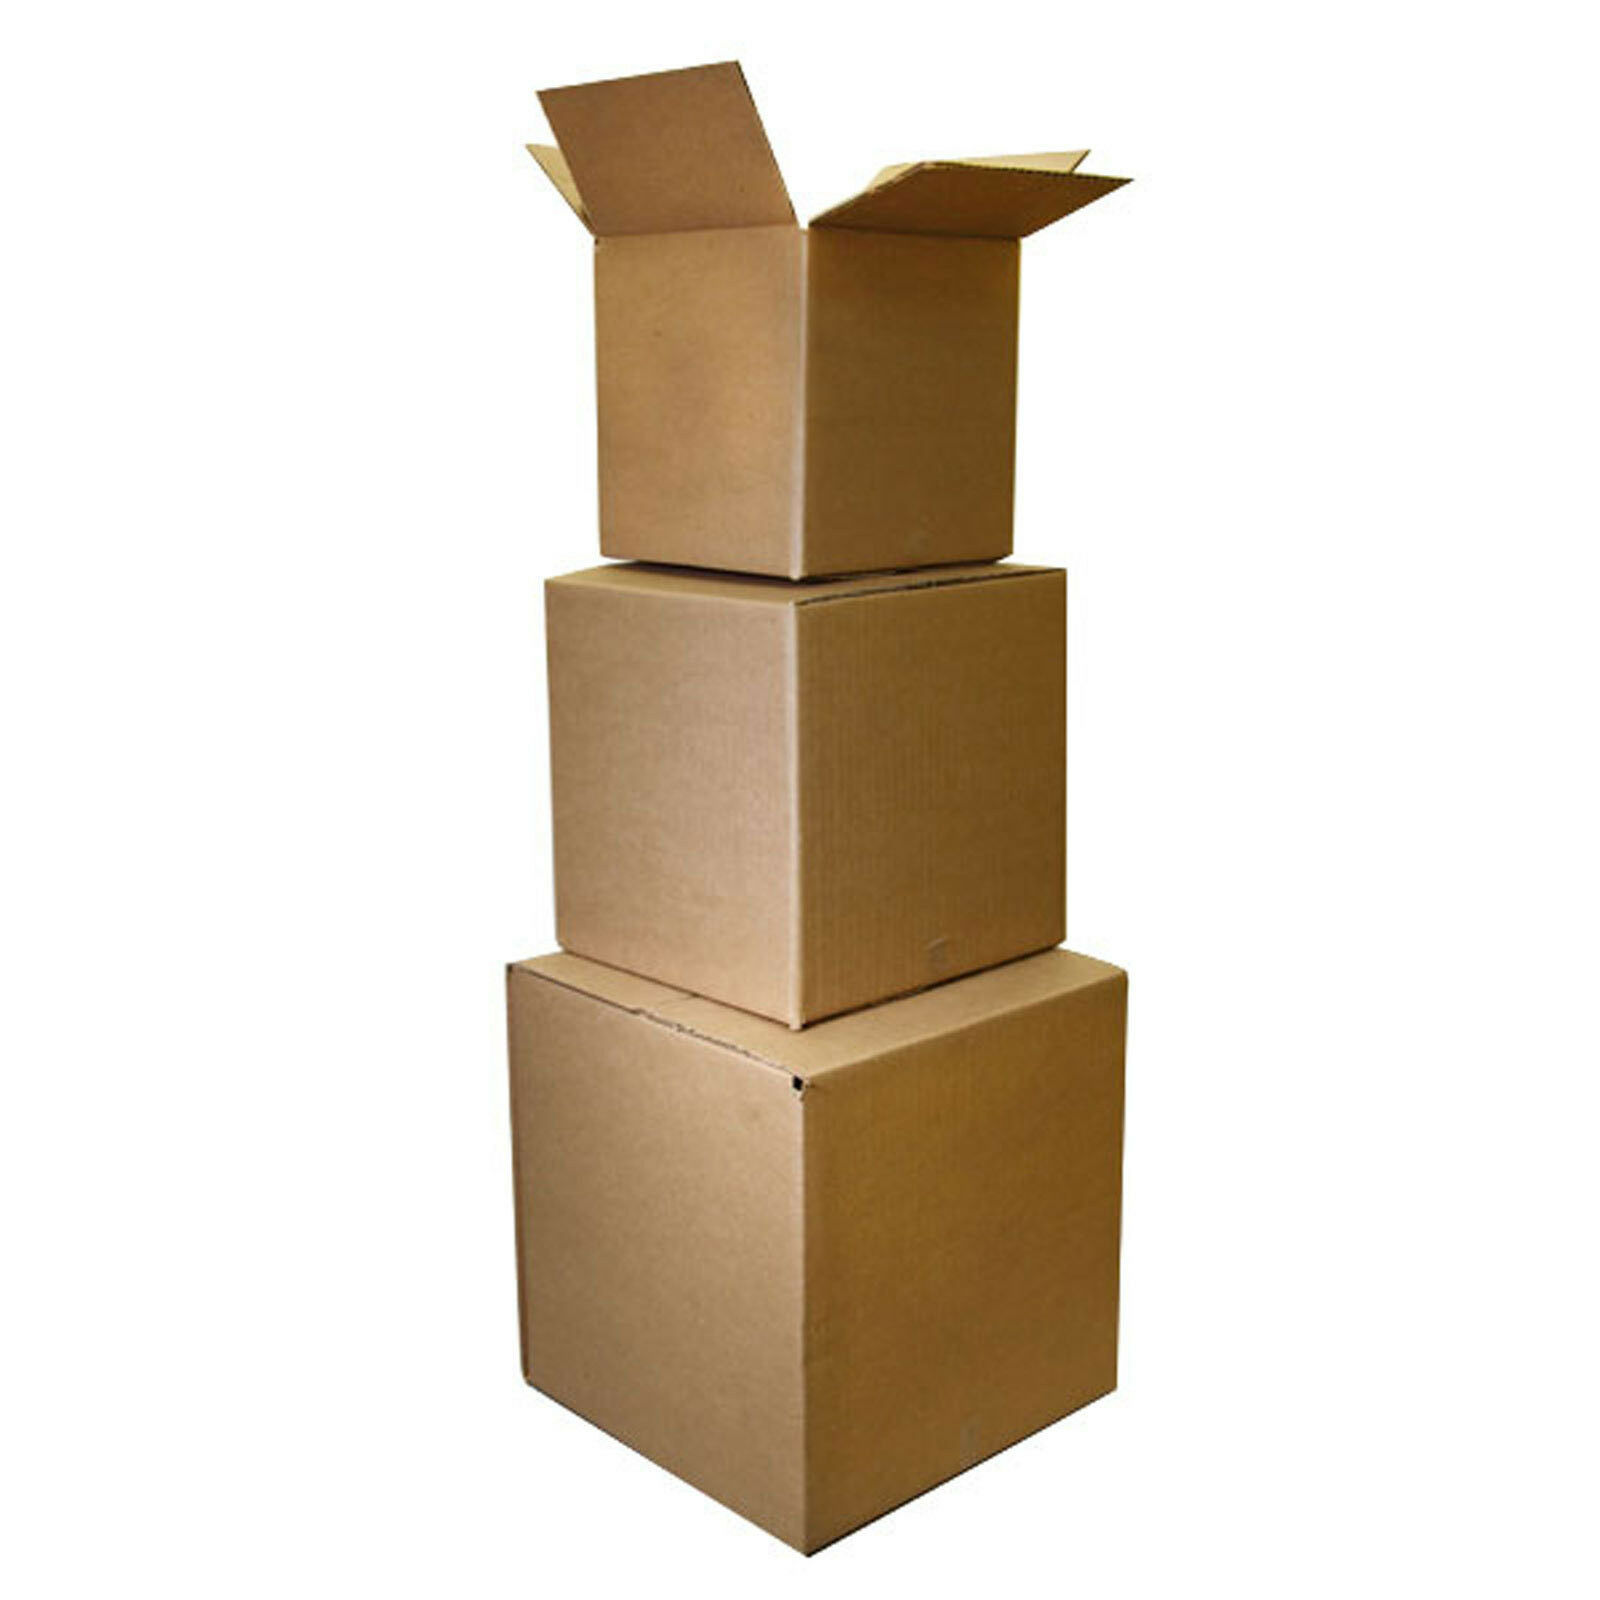 Medium moving boxes 18x14x12 pack of 20 boxes for Used boxes for moving house